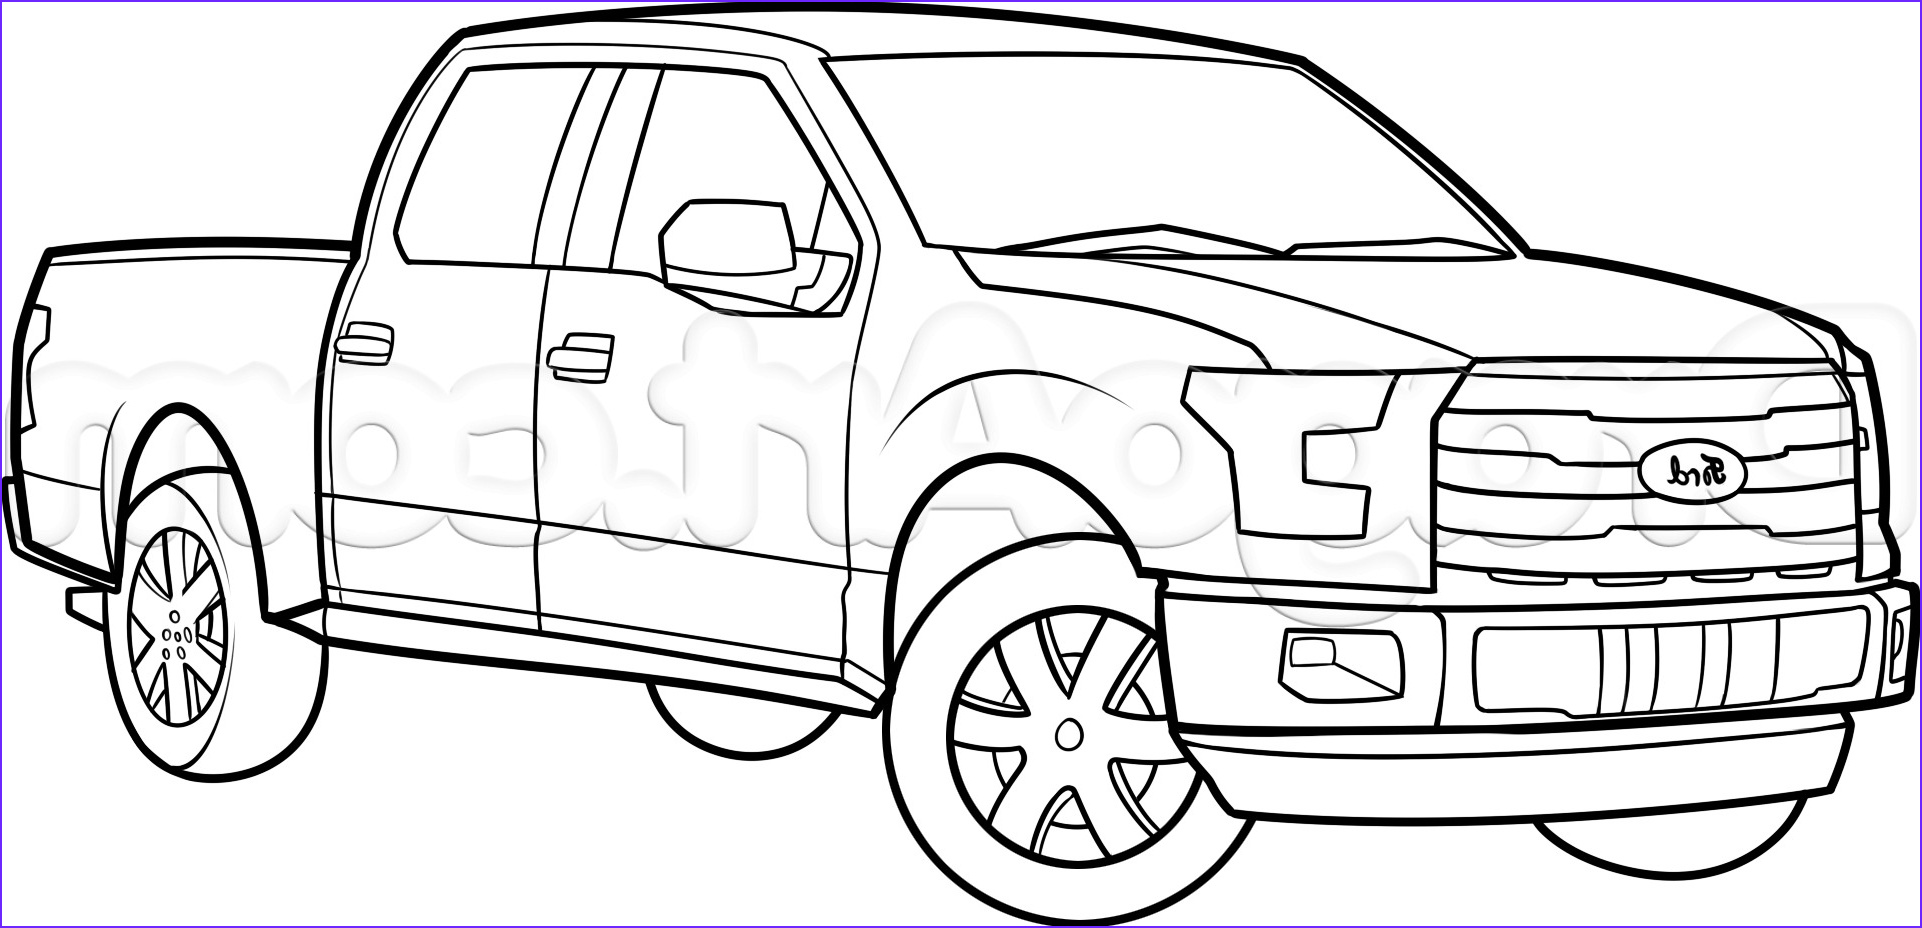 how to draw an f 150 ford pickup truck